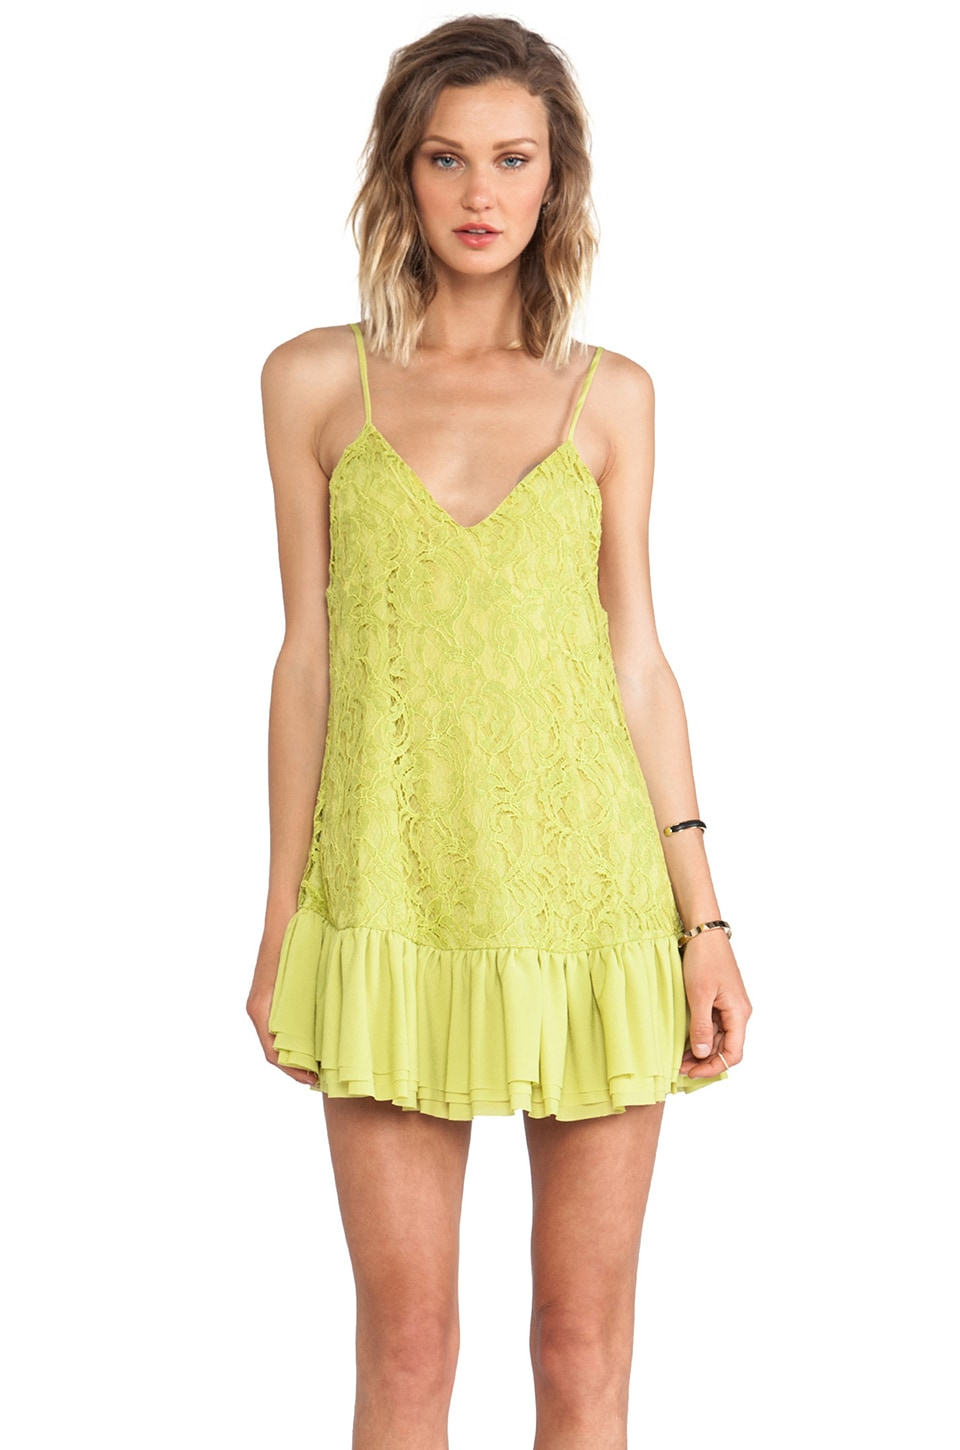 Lovers + Friends Sure Thing Dress in Citrus Lace